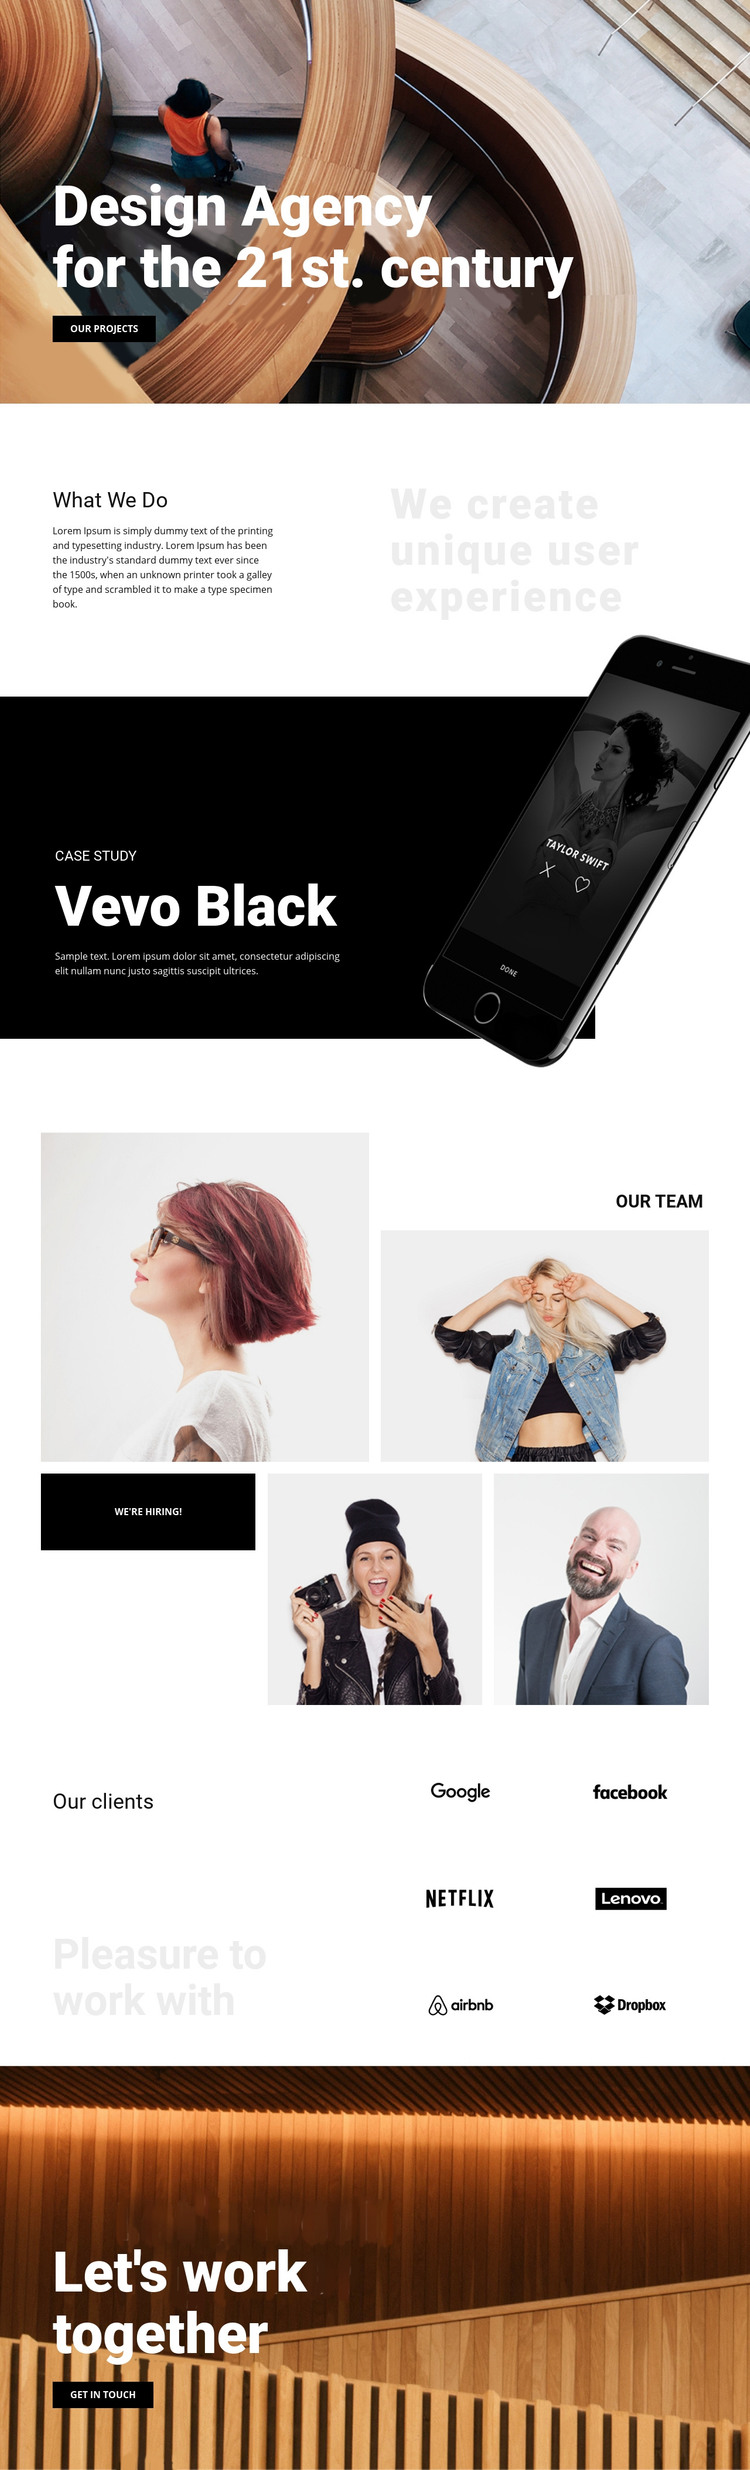 Our work is your success Homepage Design